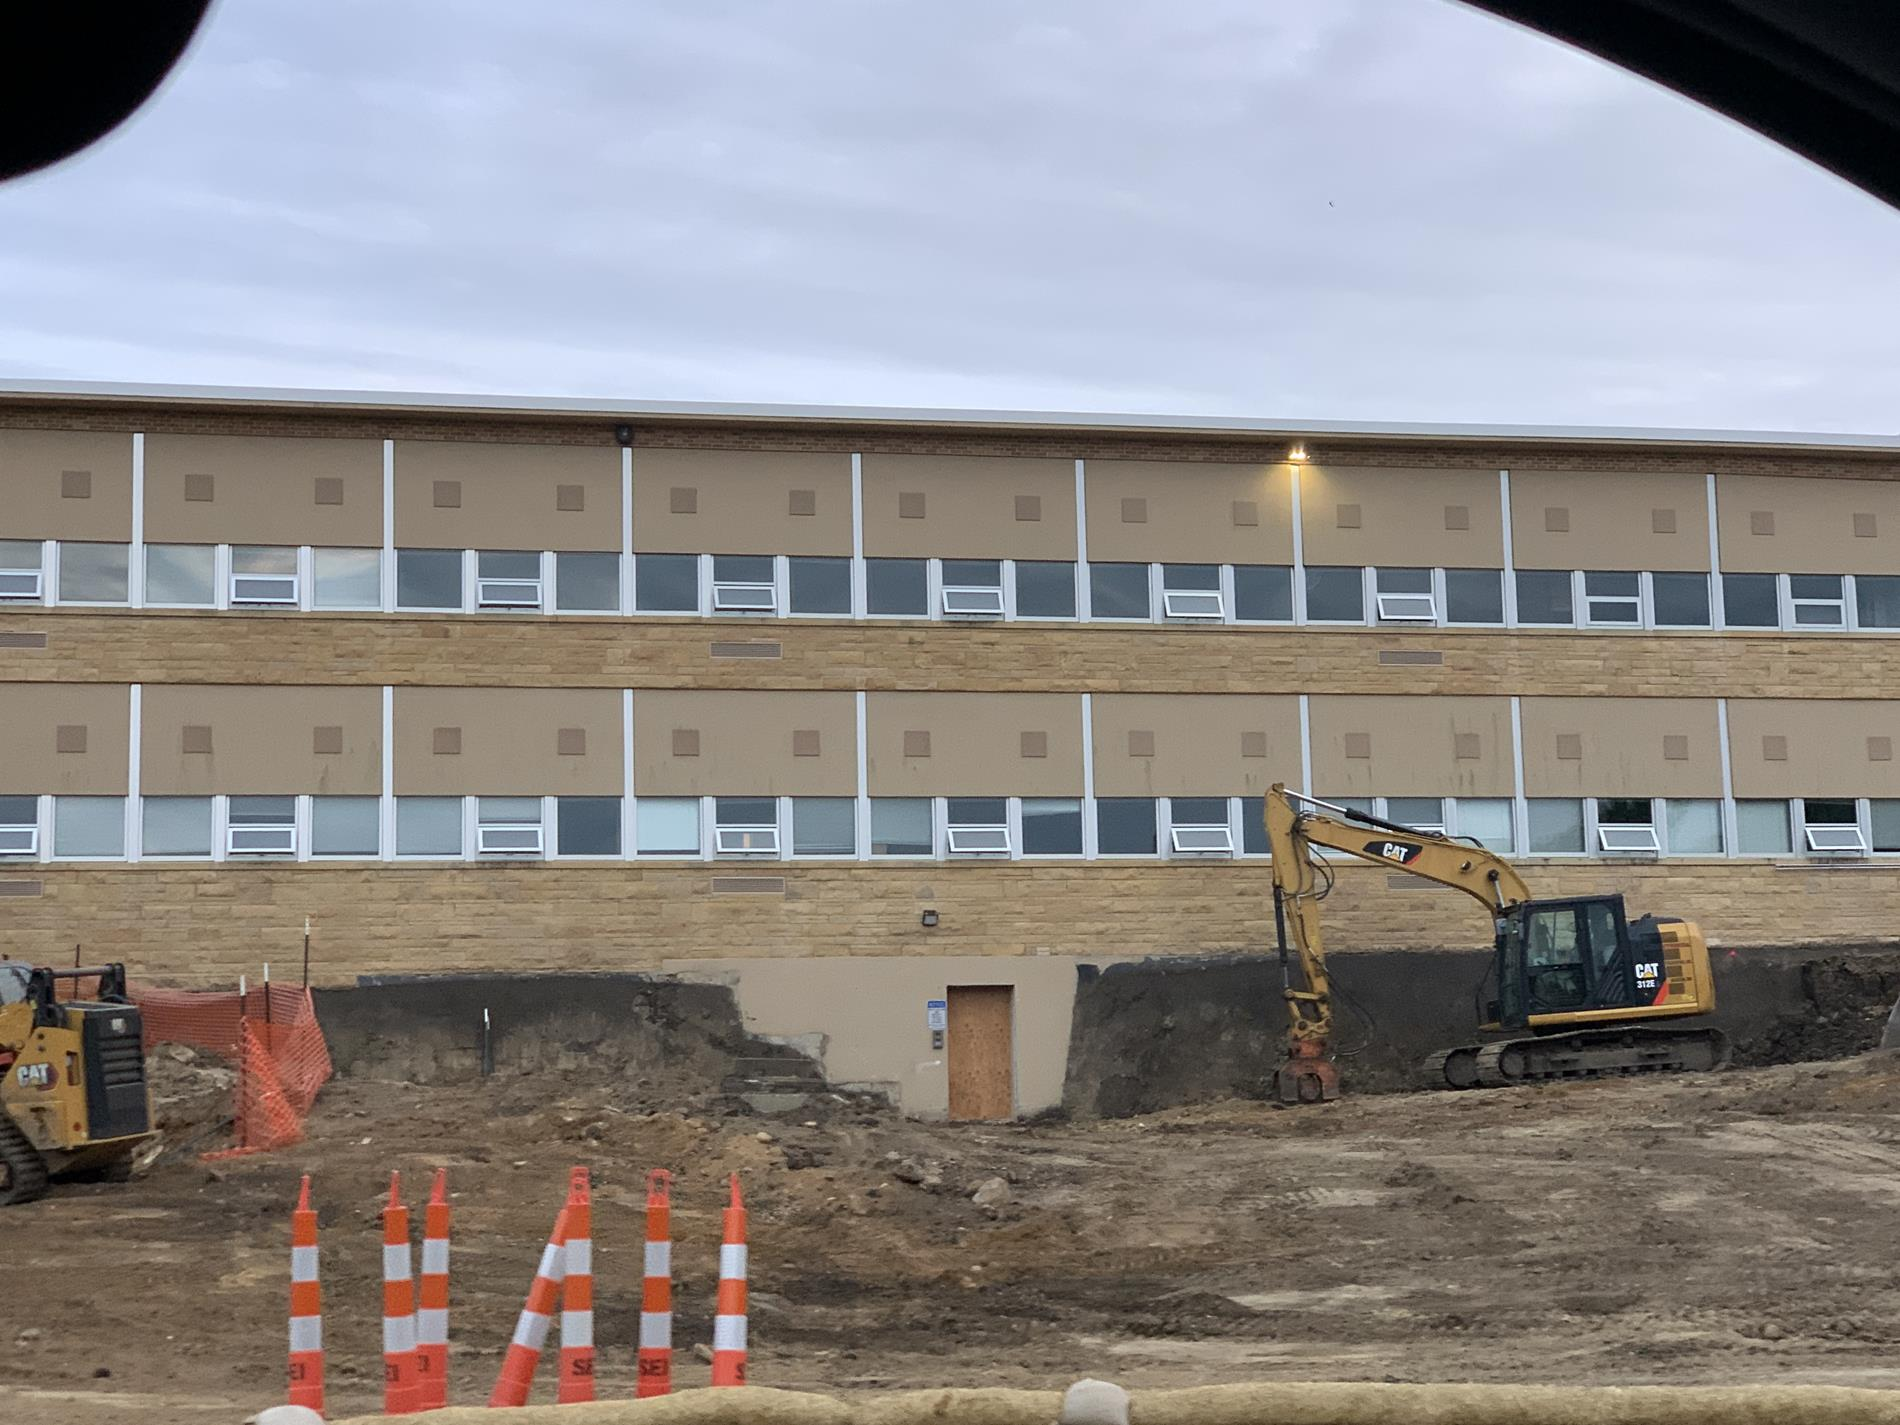 The retaining wall is down and they are doing dirt work for the project